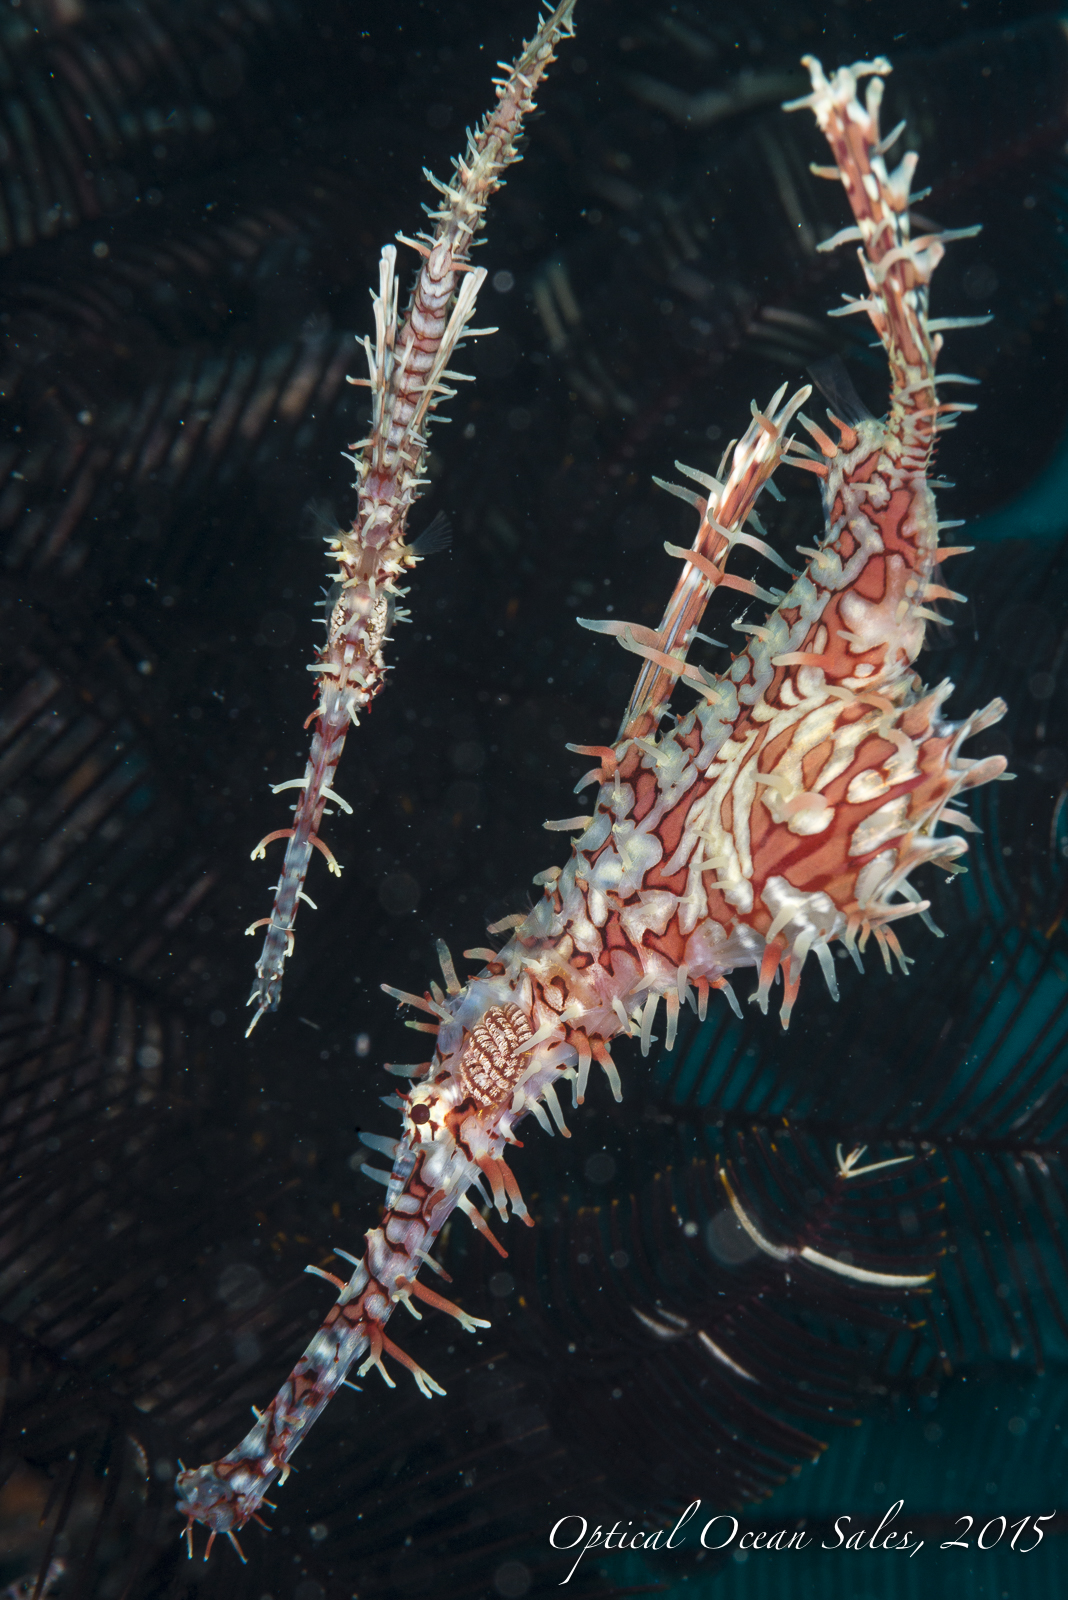 Ornate Ghost Pipefish-38